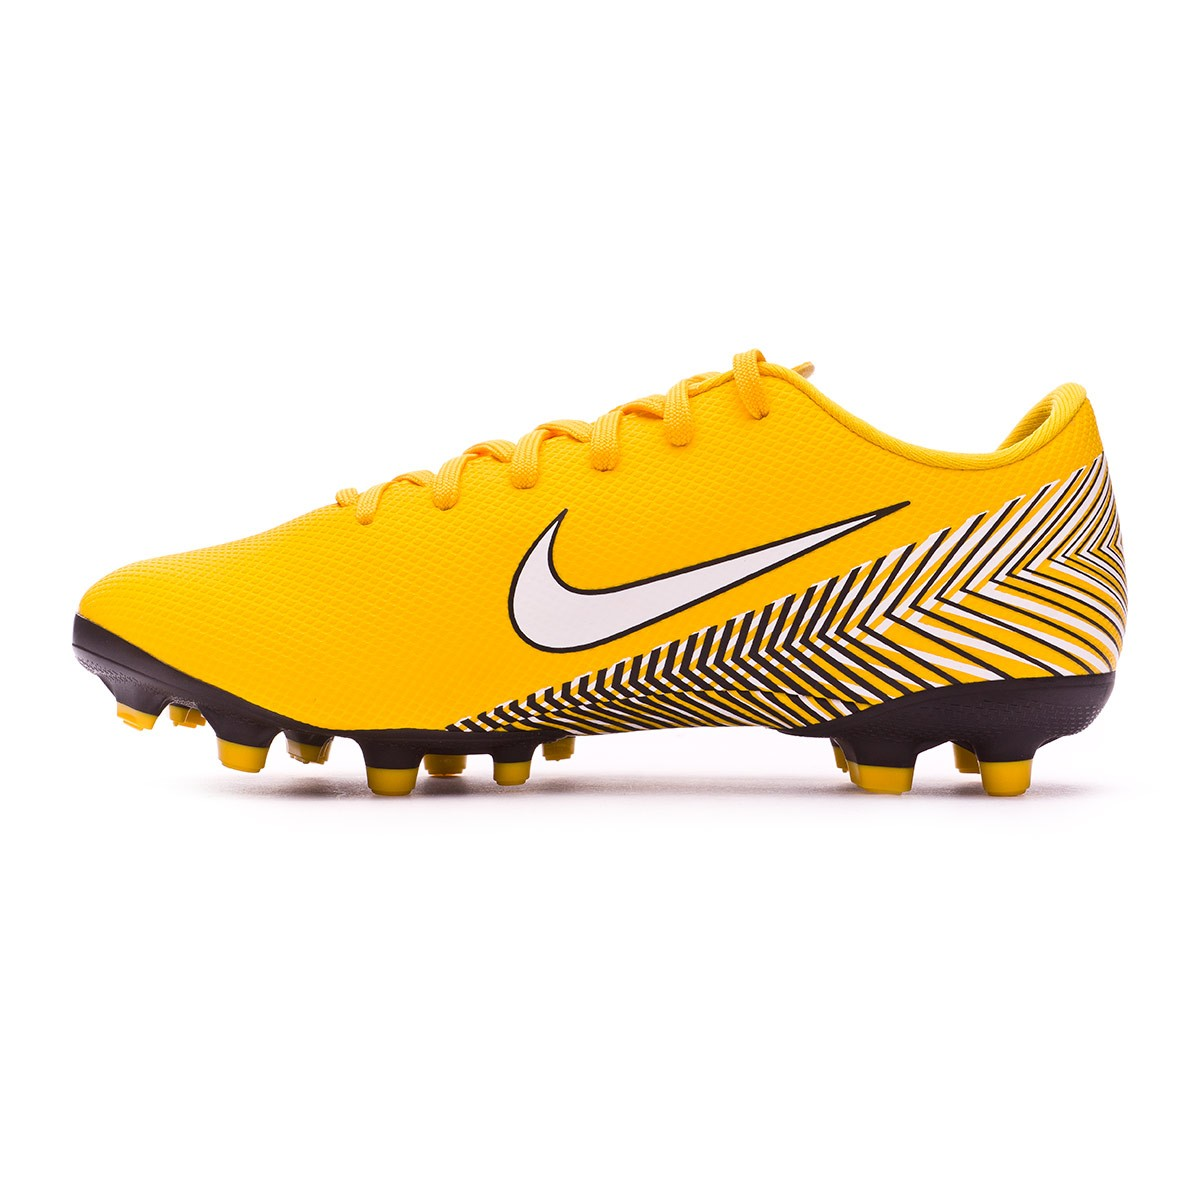 info for 9b554 f218a Football Boots Nike Kids Mercurial Vapor XII Academy MG Neymar  Yellow-Dinamic yellow-Black - Football store Fútbol Emotion